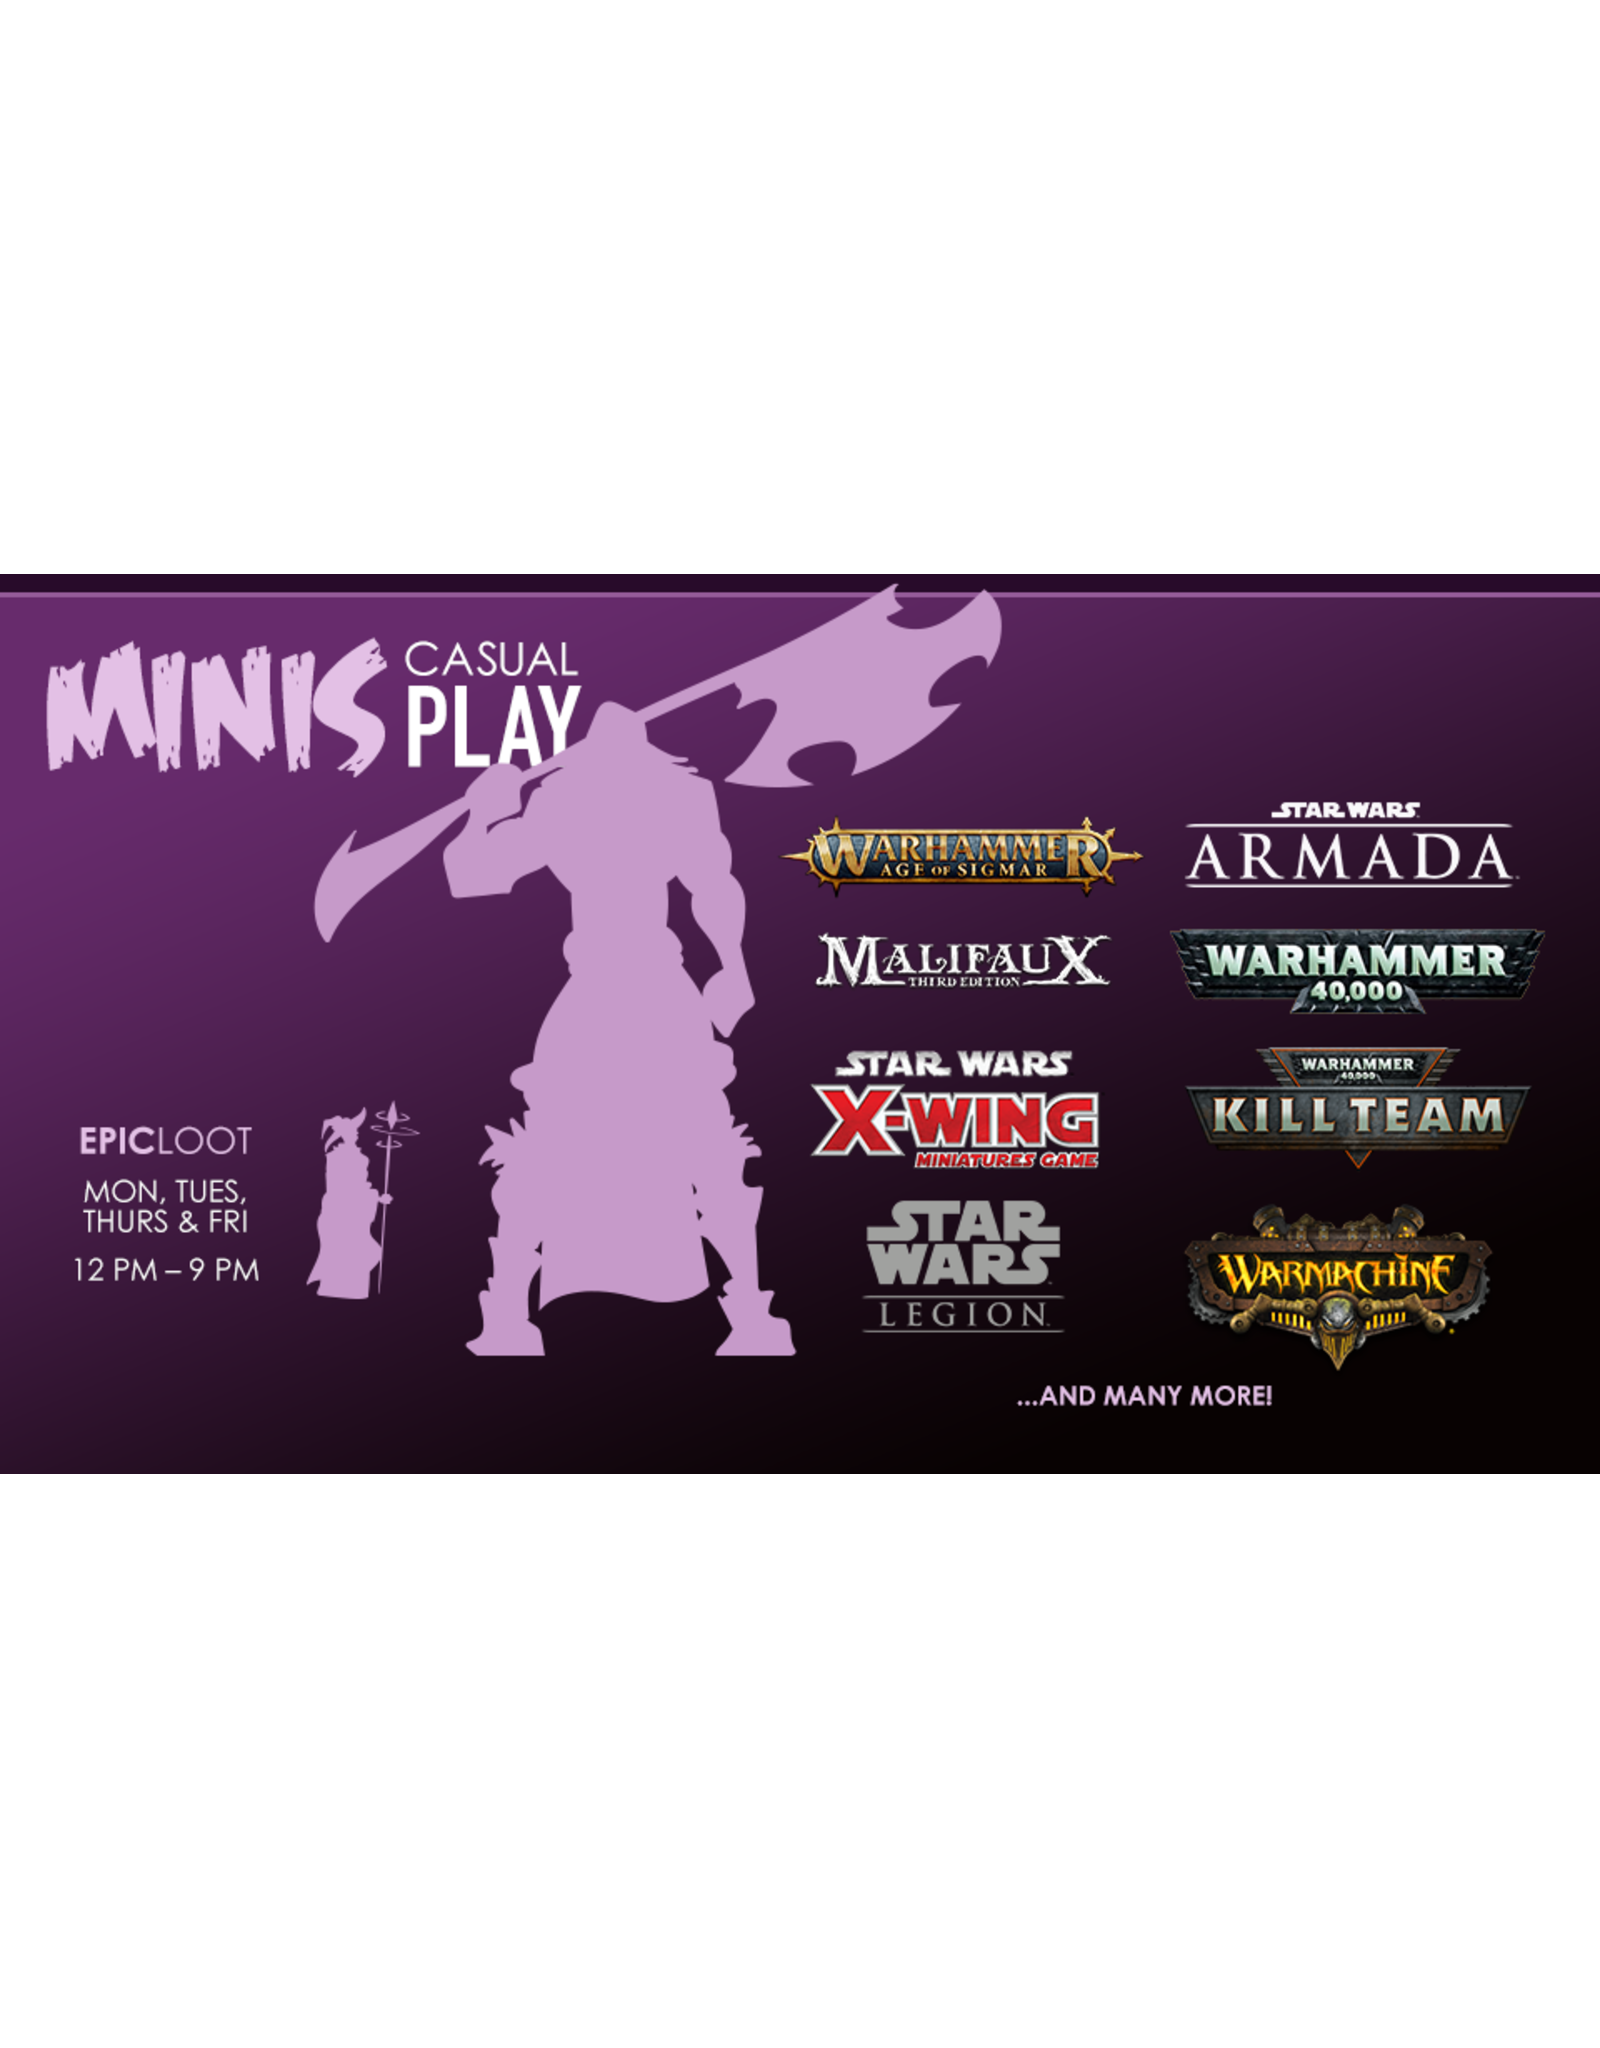 Minis Casual Play - Thurs 9/16  12 PM - 9 PM